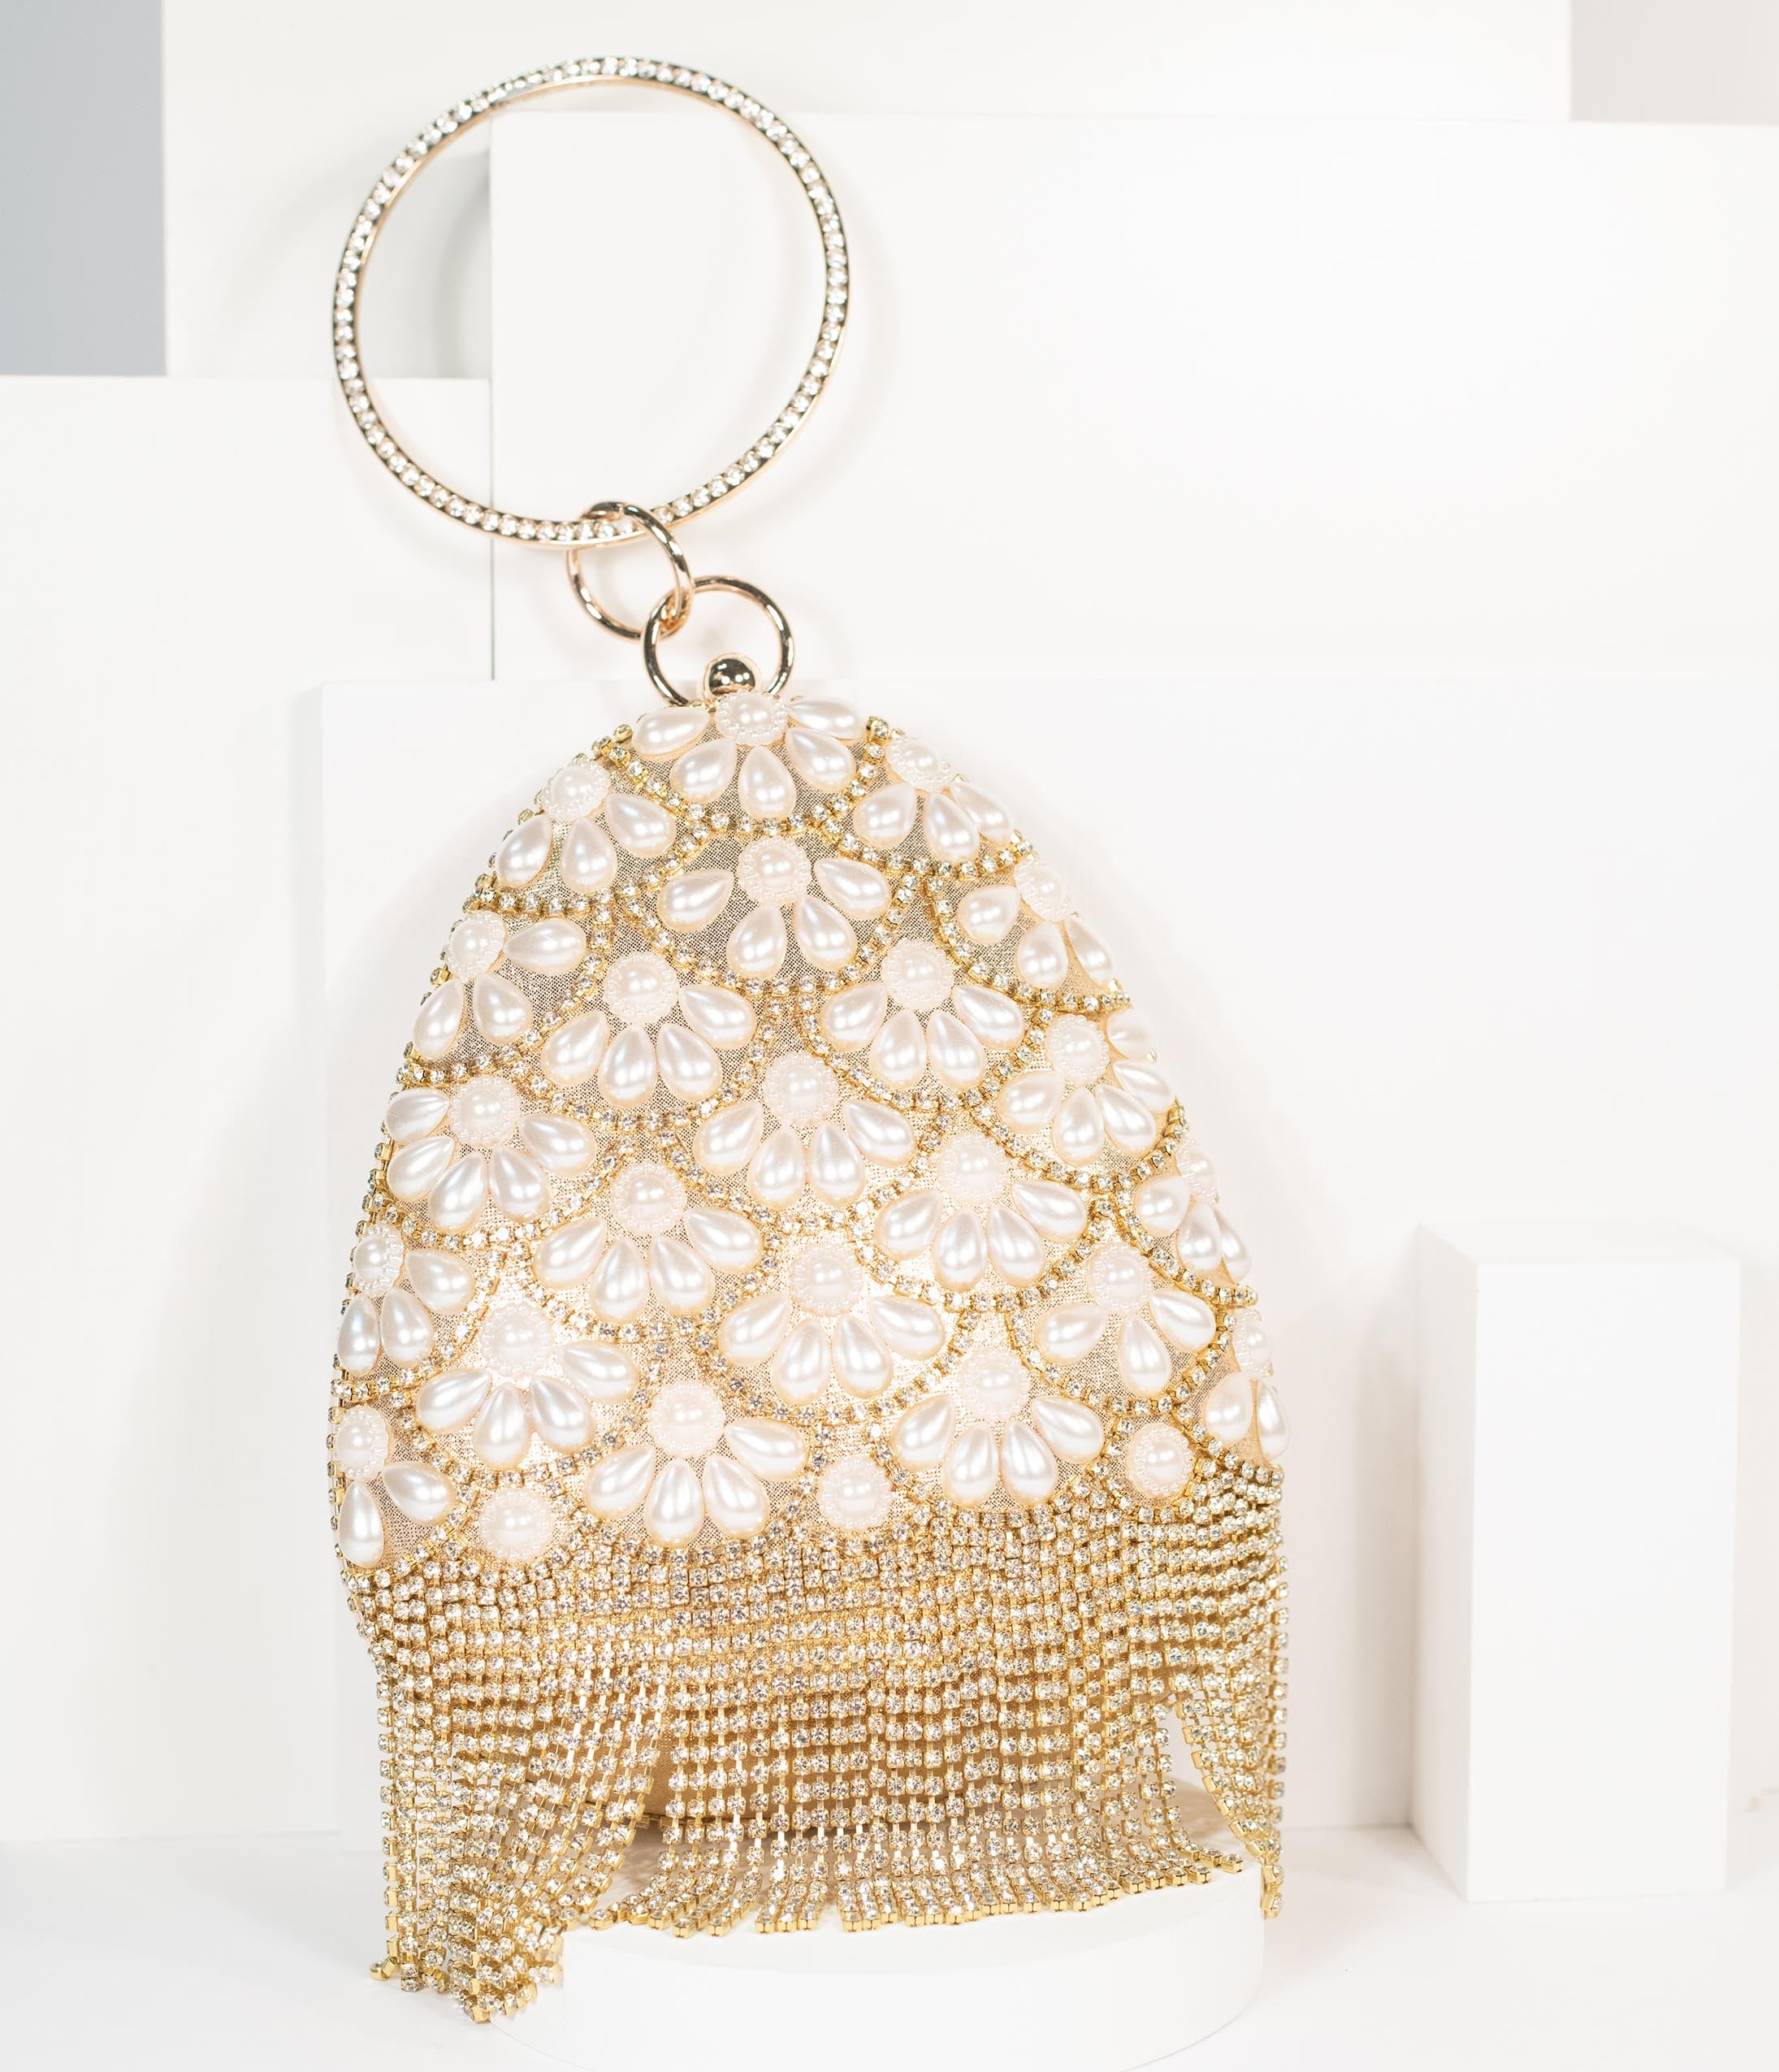 1920s Handbags, Purses, and Shopping Bag Styles Unique Vintage Gold Pearl  Rhinestone Handbag $62.00 AT vintagedancer.com